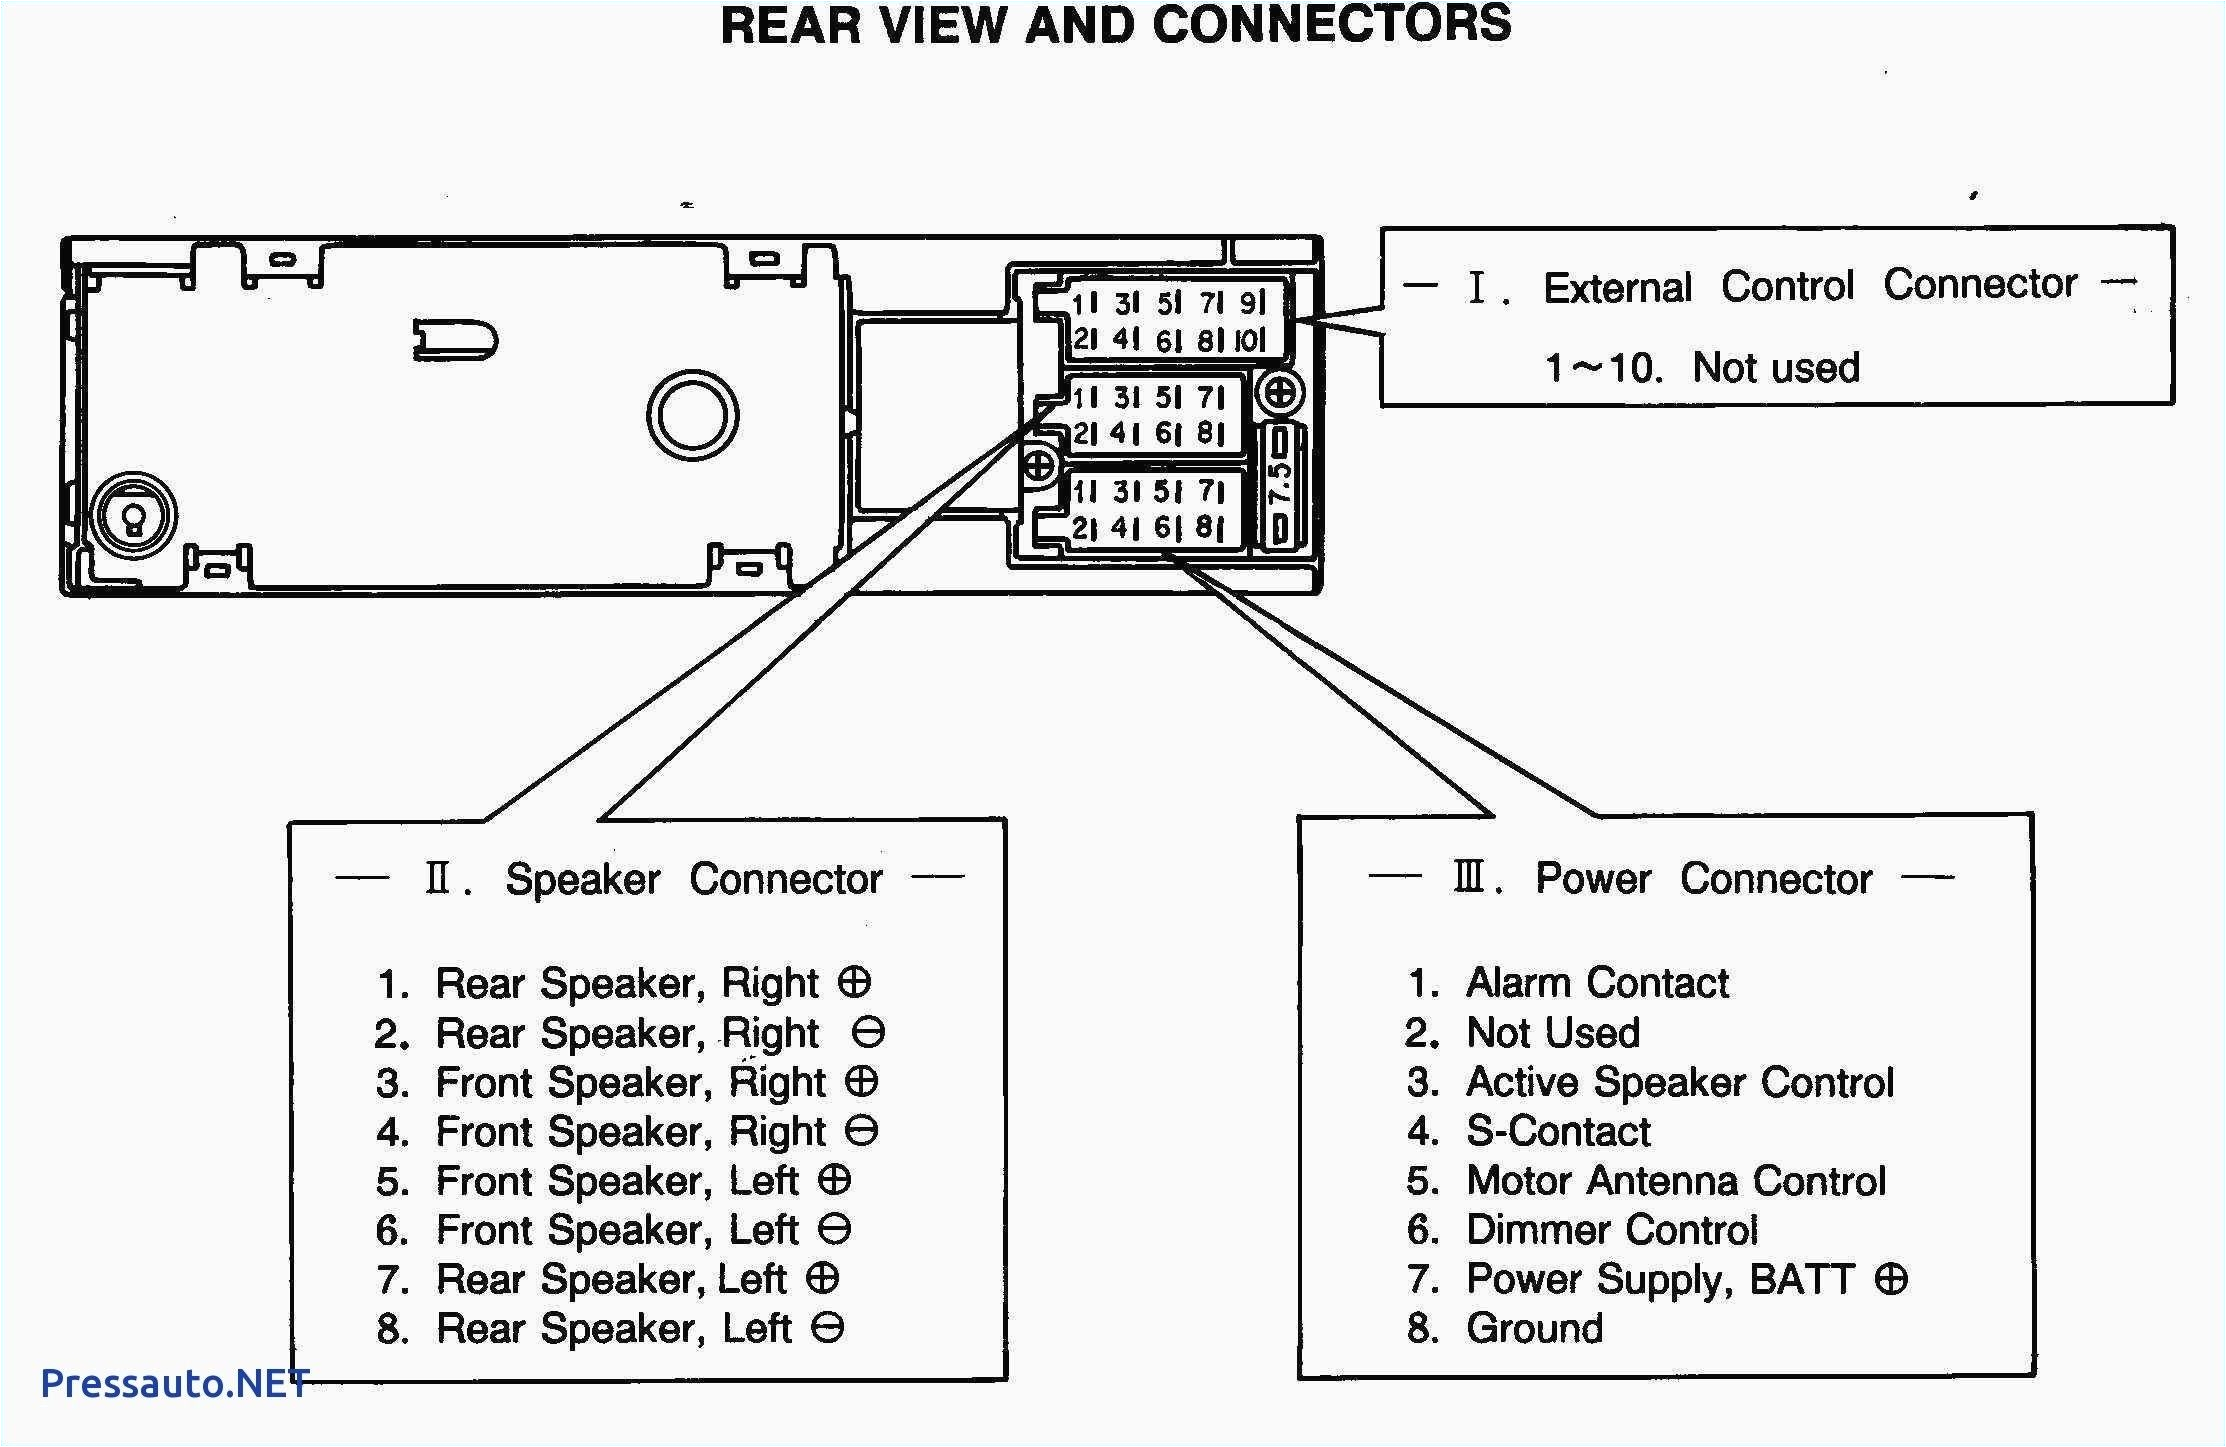 stereo wiring diagram for 2001 cadillac deville wiring library pertaining to 2001 cadillac deville radio wiring diagram jpg